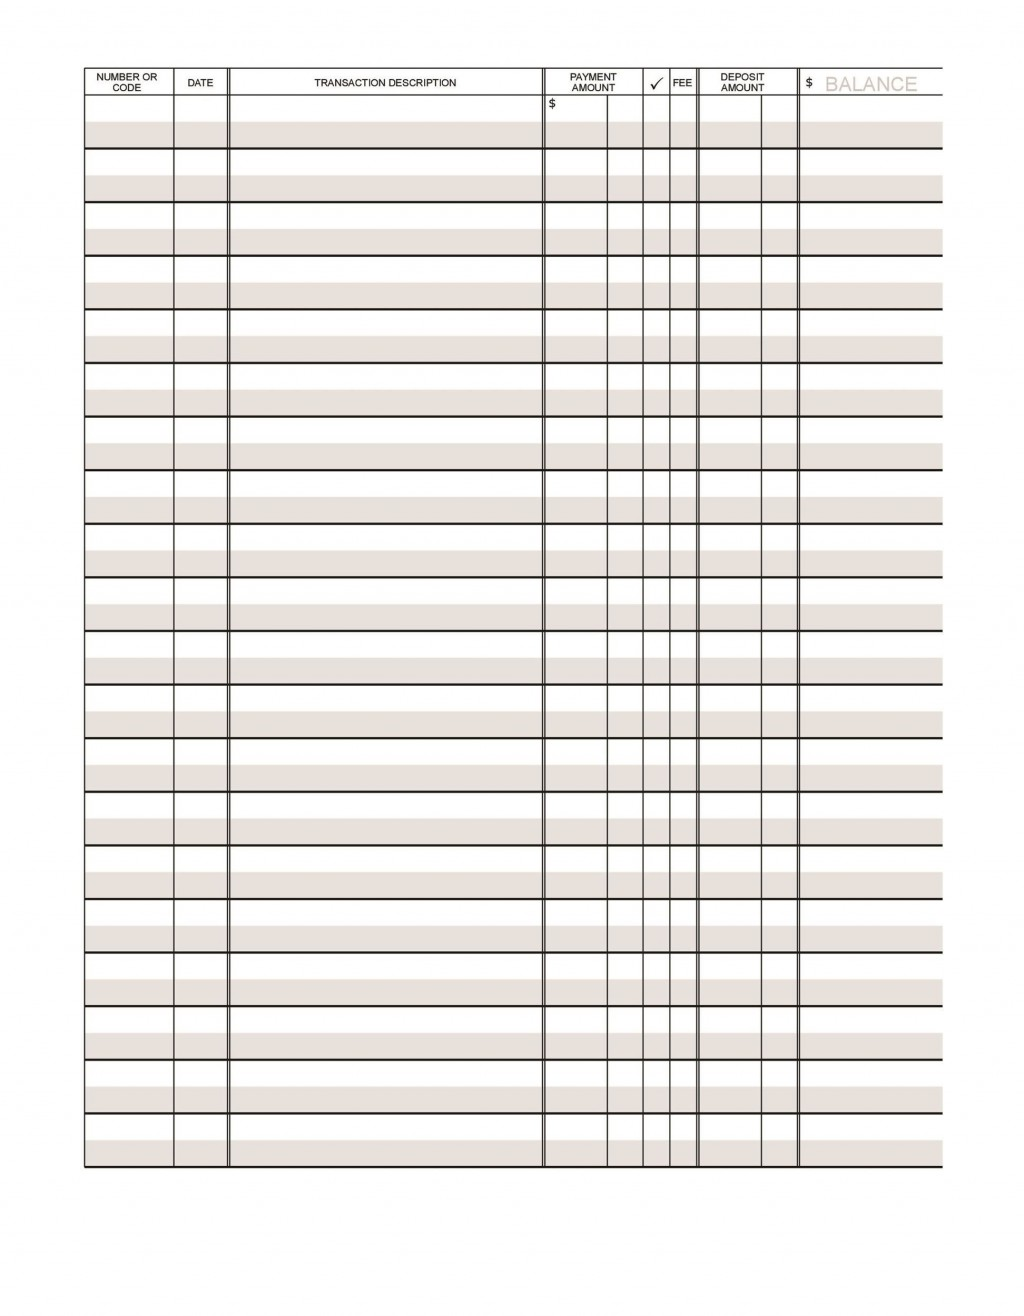 003 Simple Checkbook Register Template Excel High Definition  Check 2007 Balance 2003Large